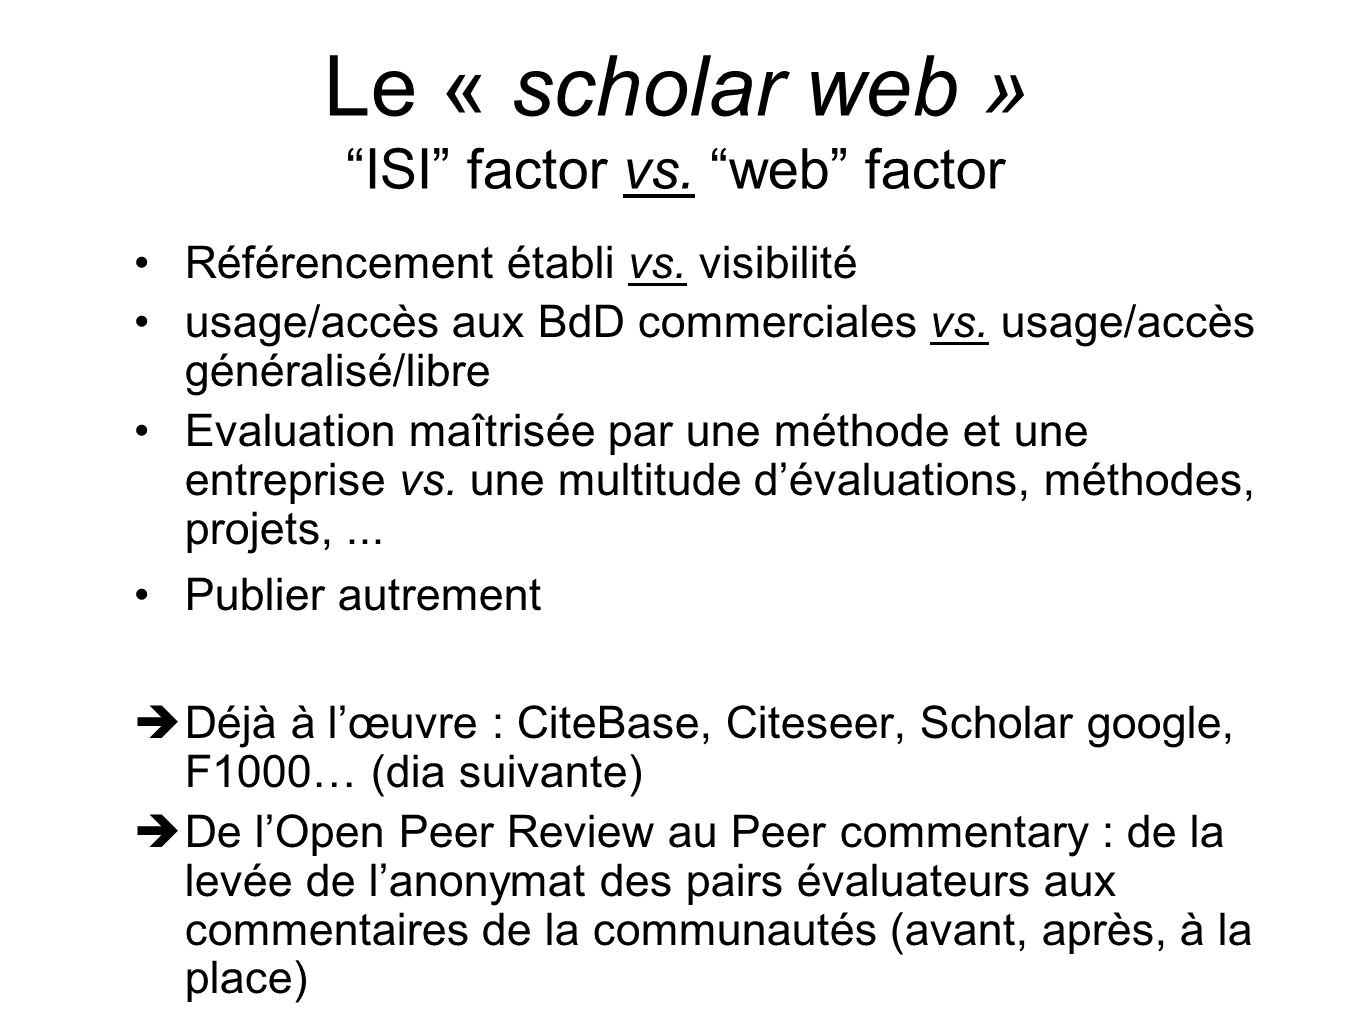 Le « scholar web » ISI factor vs. web factor